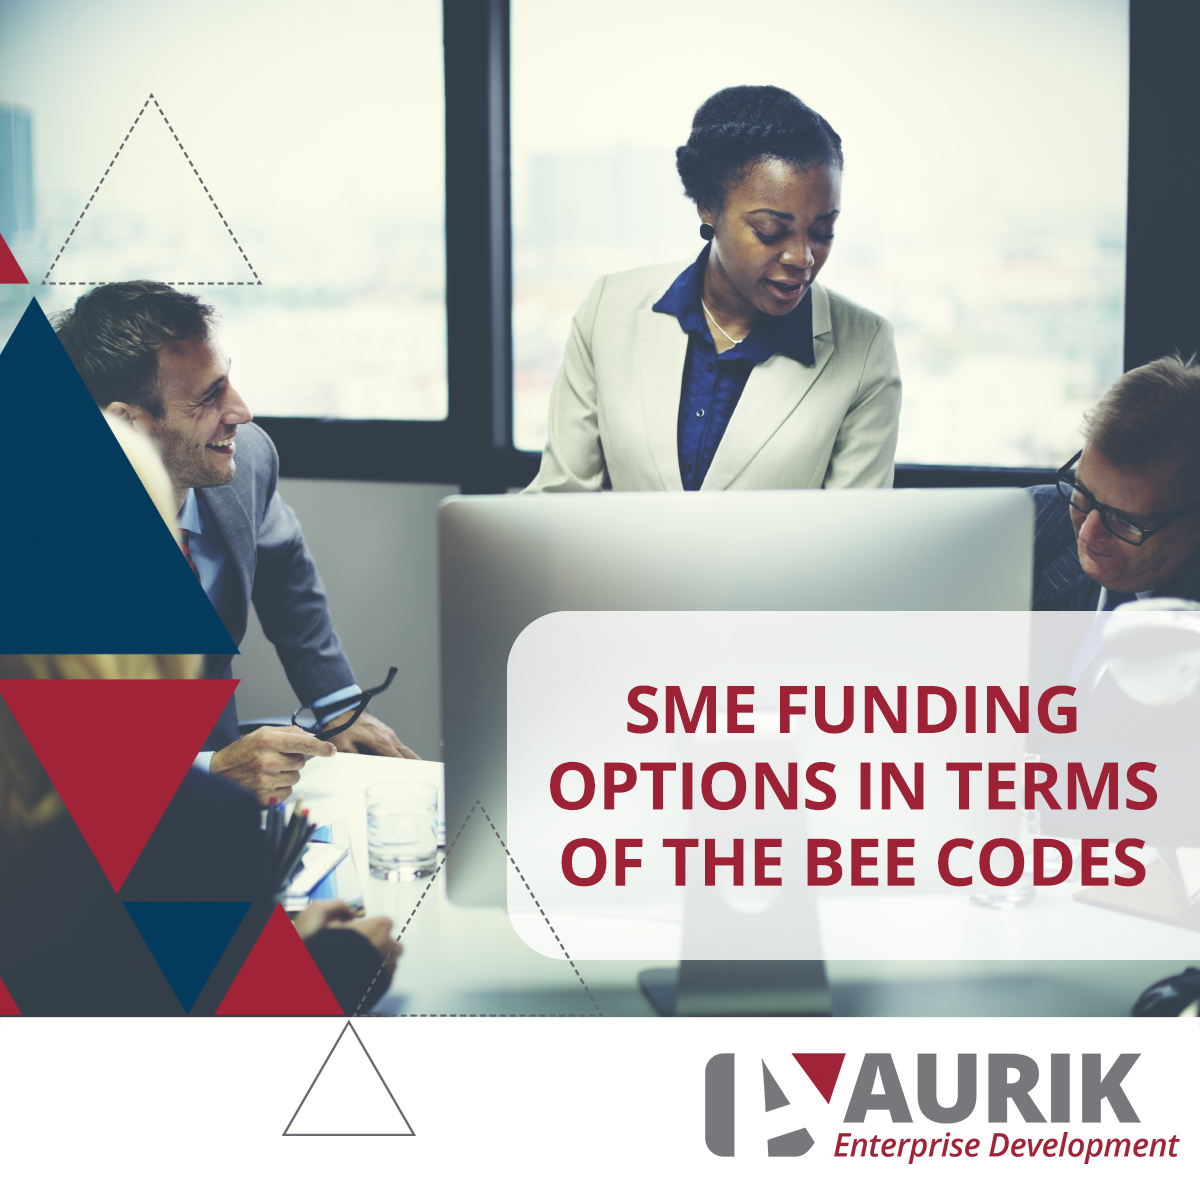 SME funding options in terms of the BEE codes?